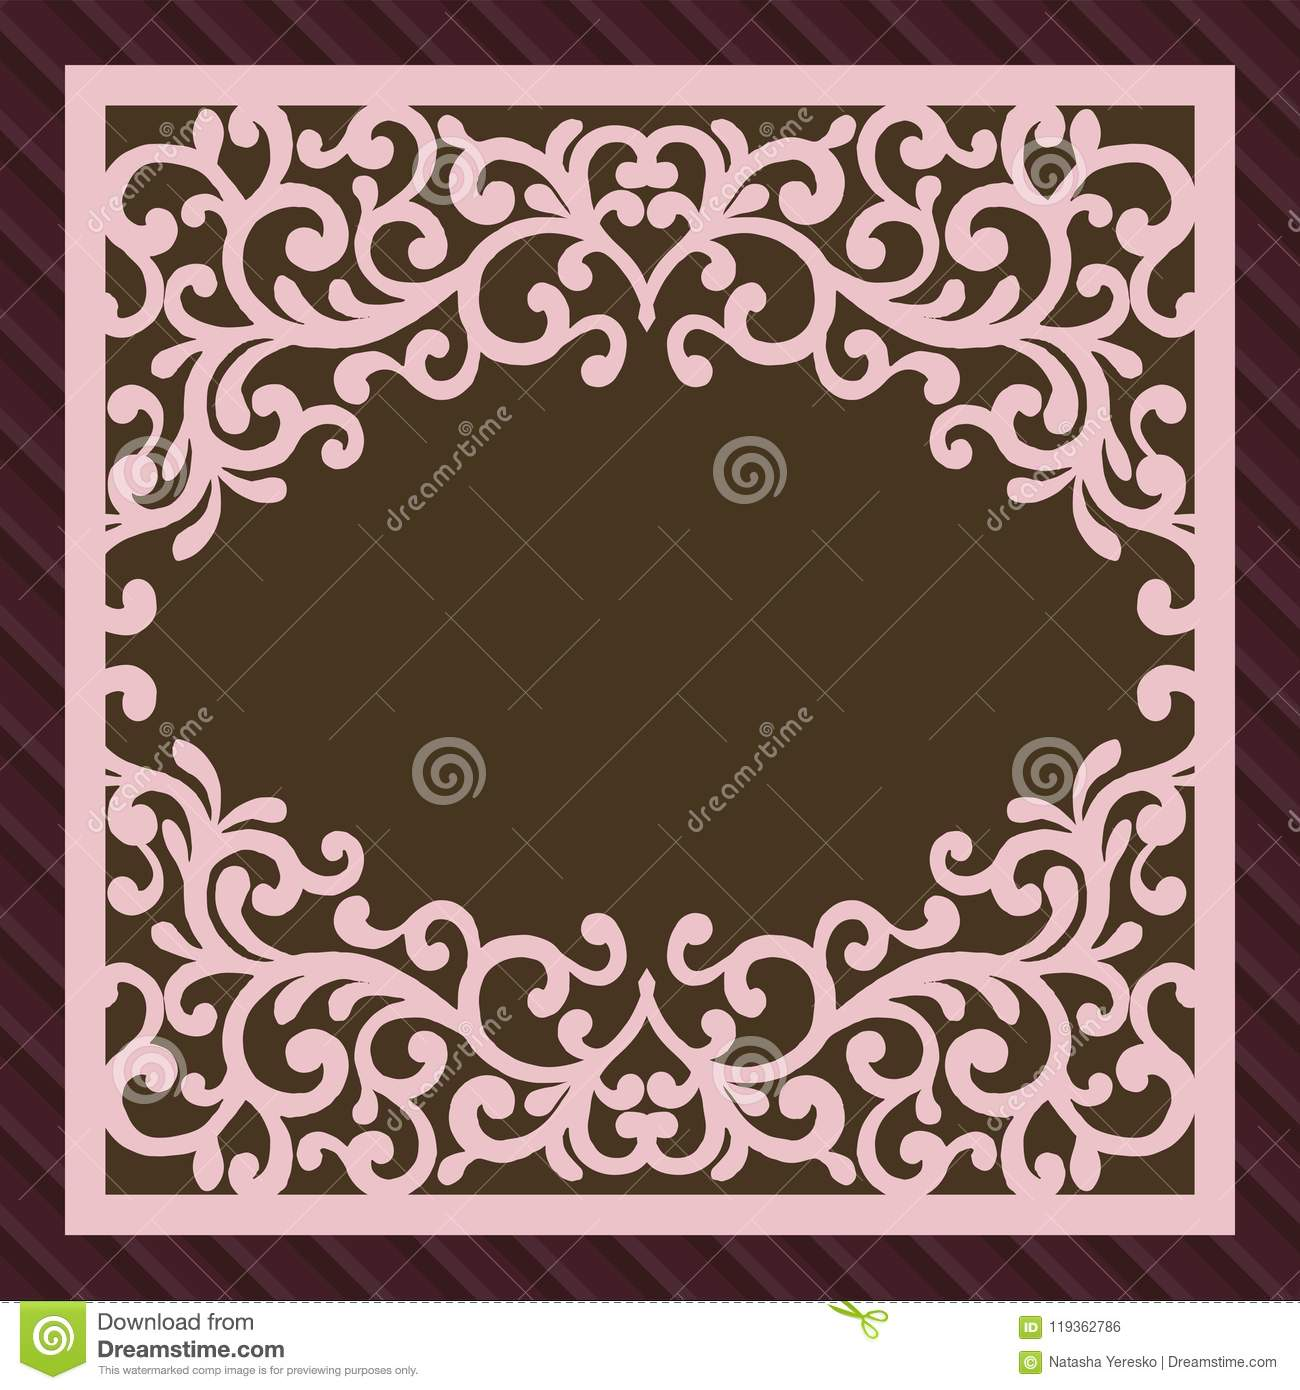 Invitation or greeting card with flower ornament. Cut laser square envelope template. Wedding invitation envelope for